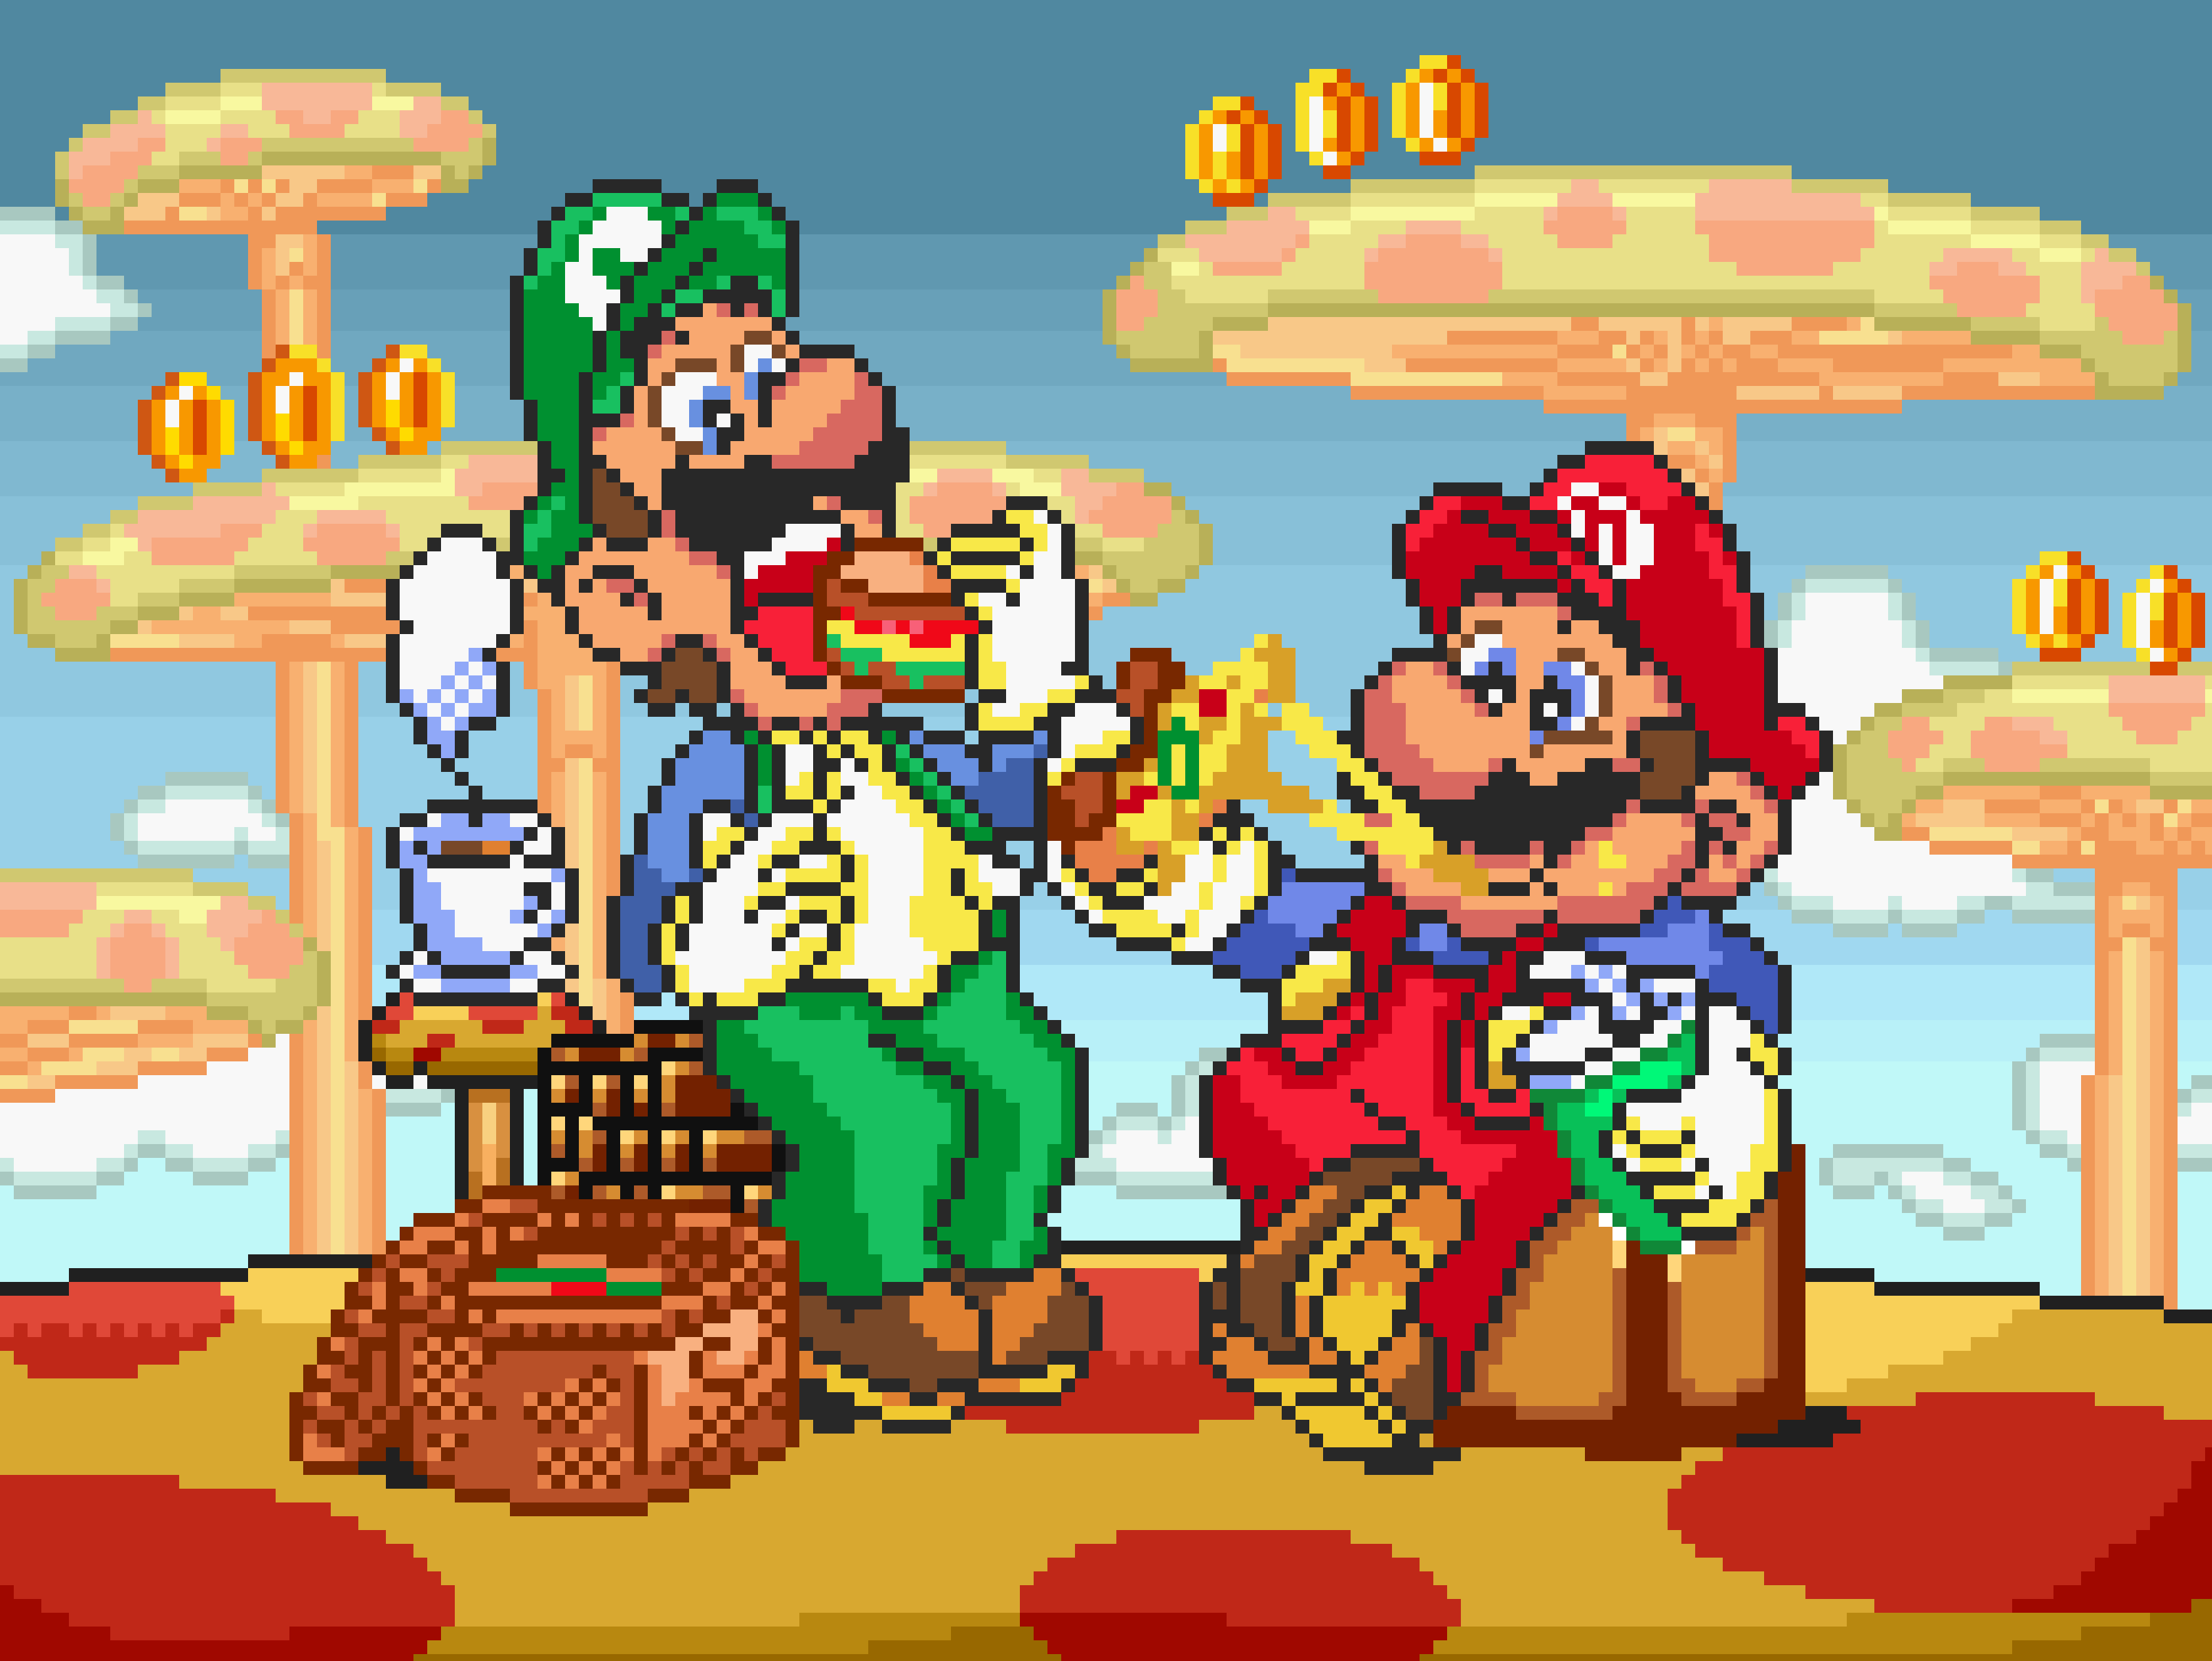 Mario and Luigi having lunch on the SNES